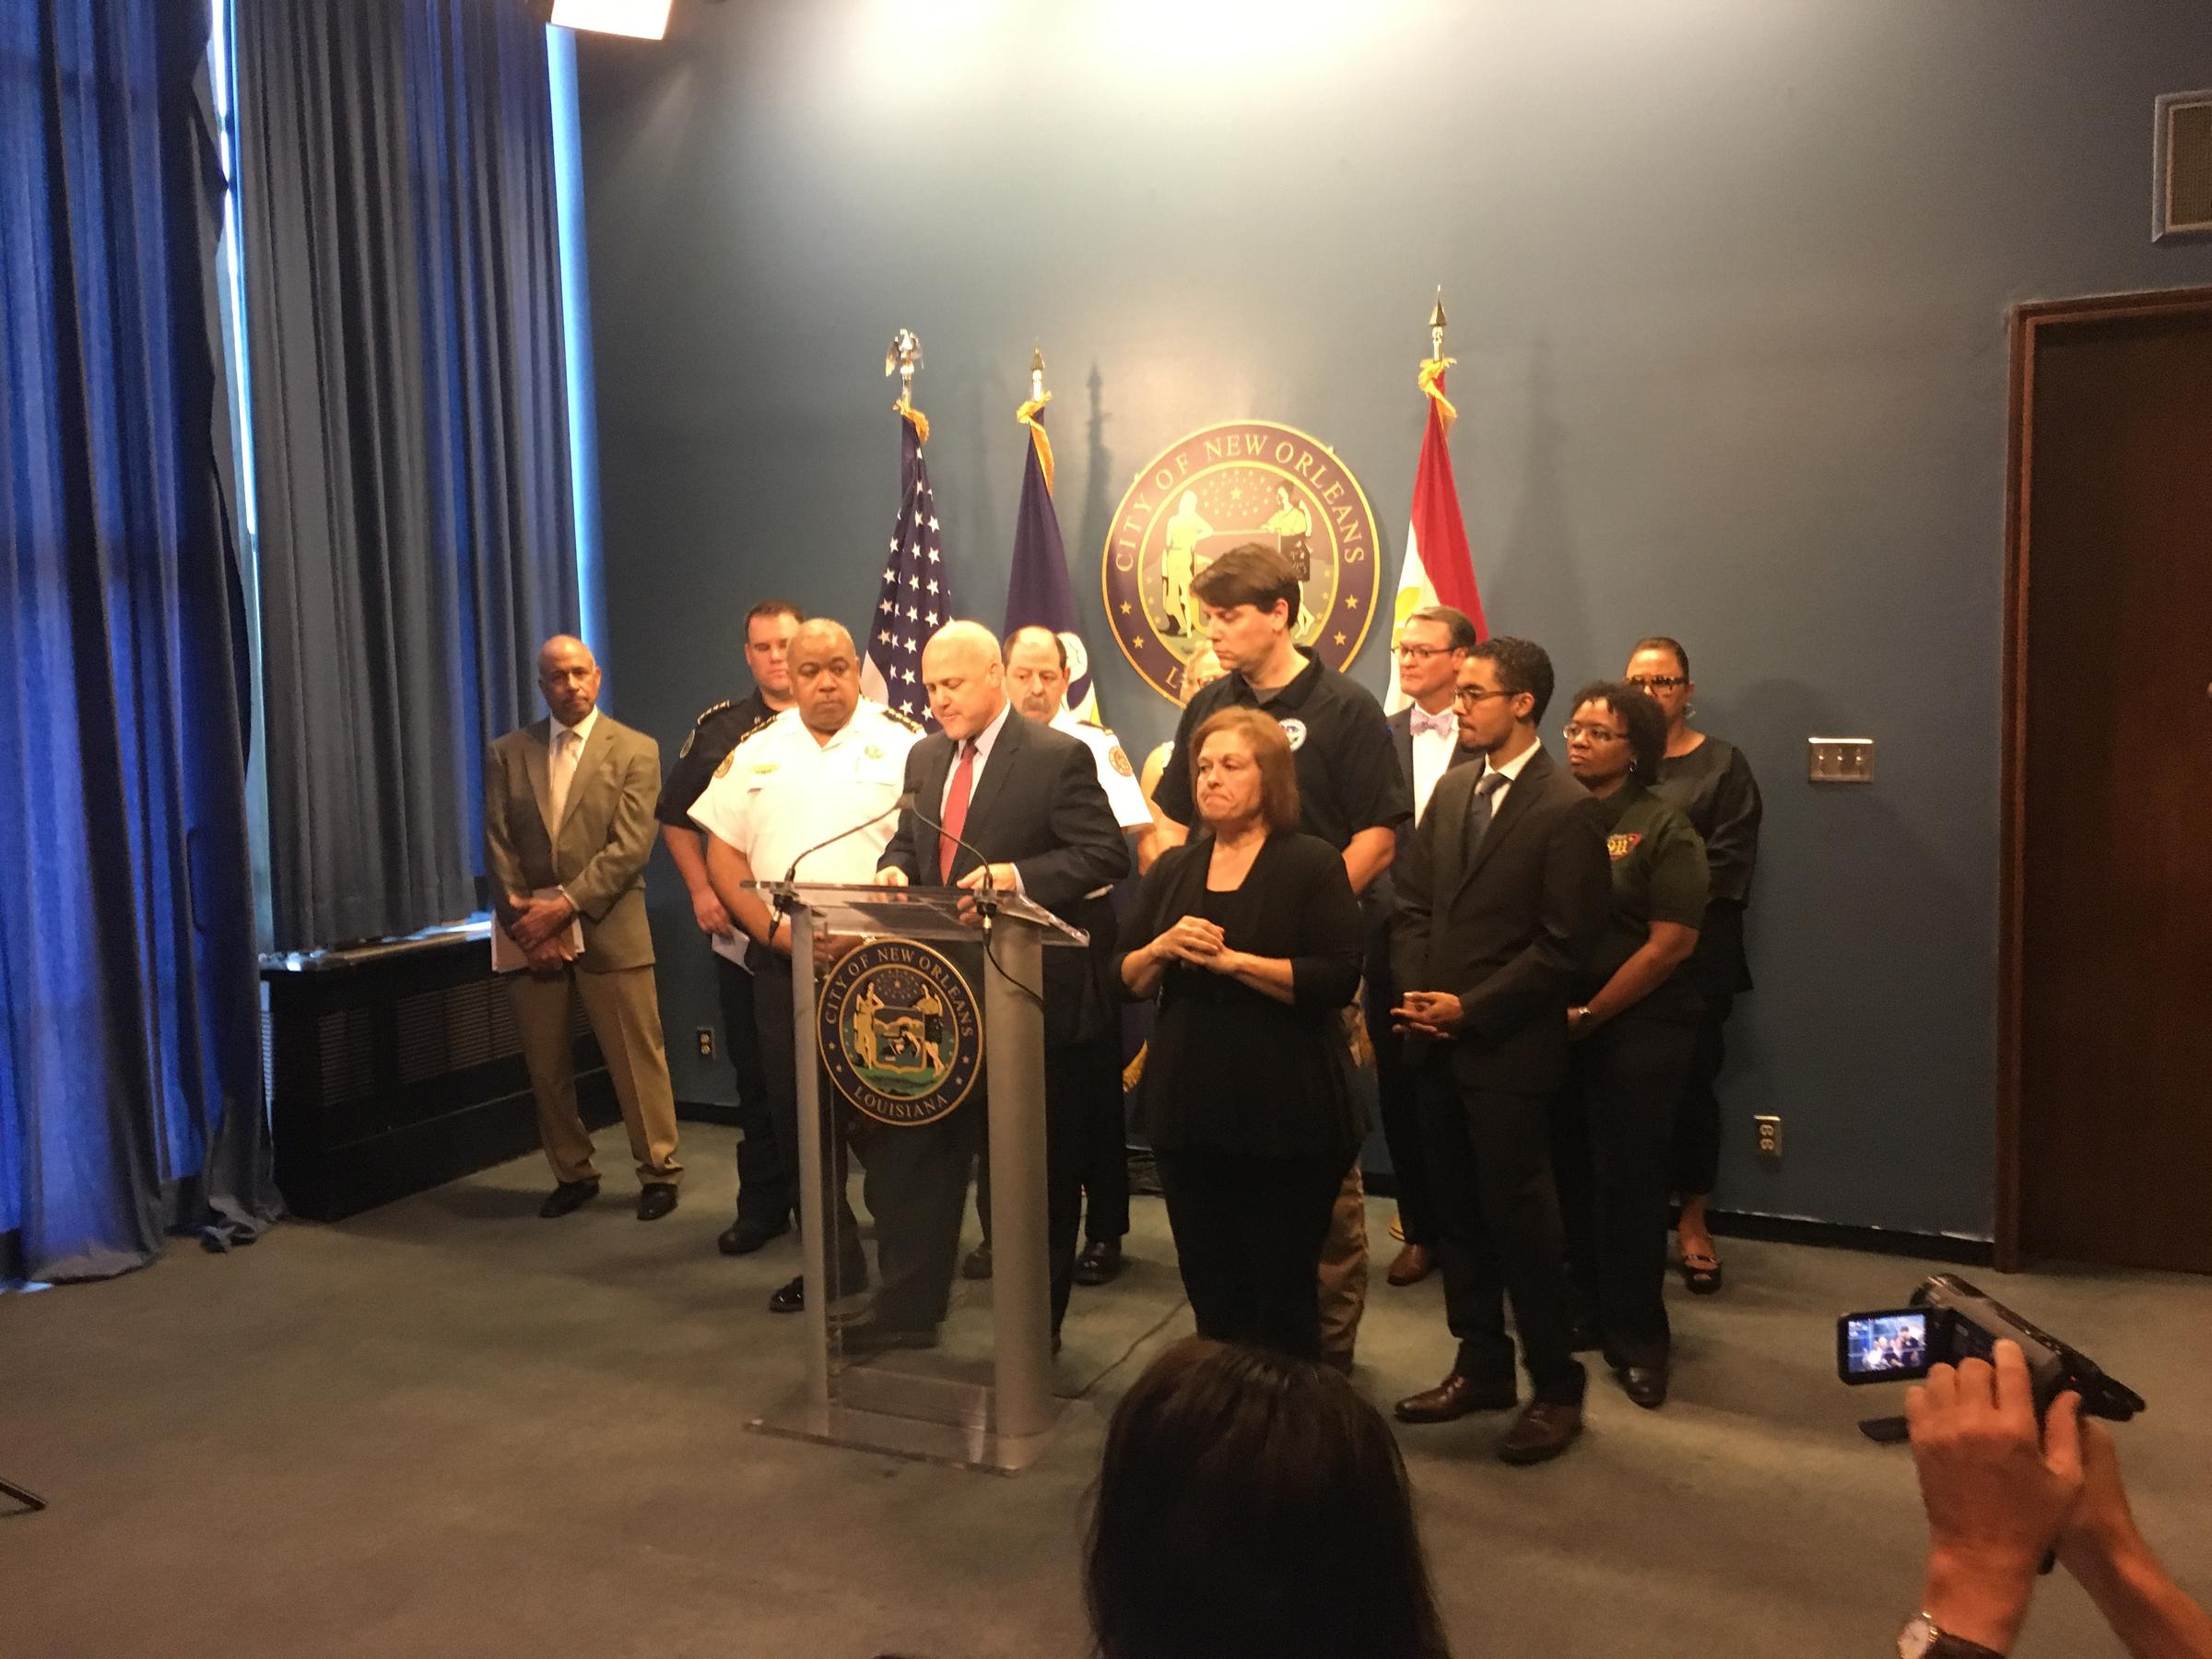 PR Mayor Landrieu Provides Updates on Tropical Storm Harvey